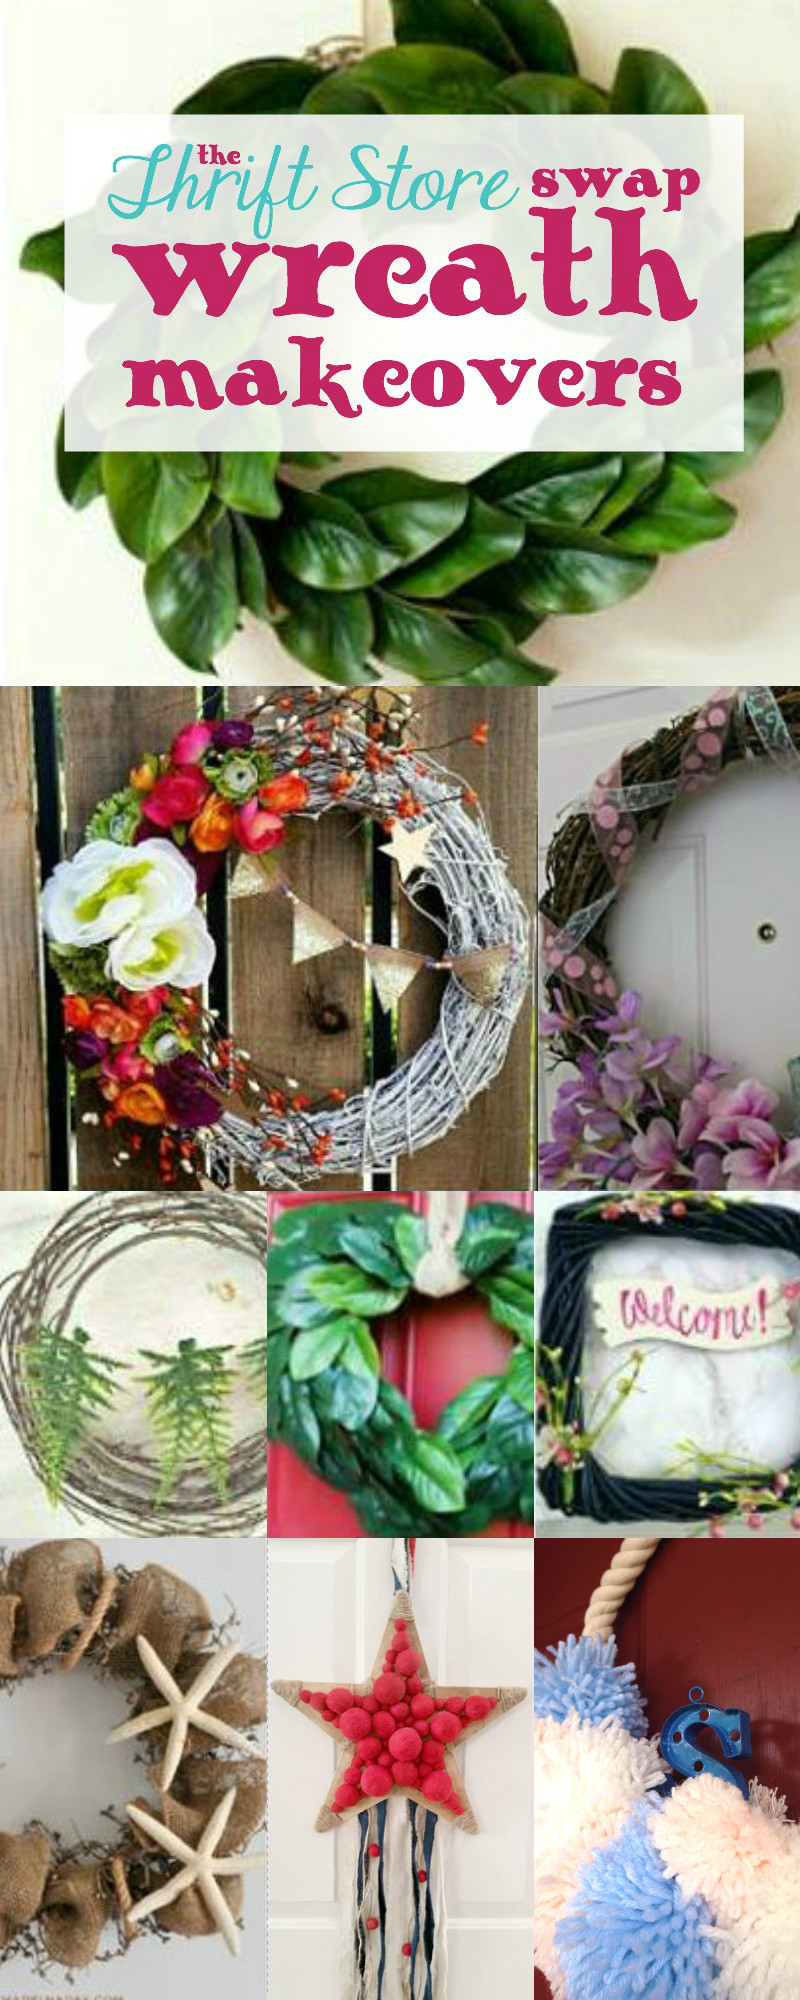 Thrift Store Swap Wreath Makeovers with Happily Ever After, Etc.